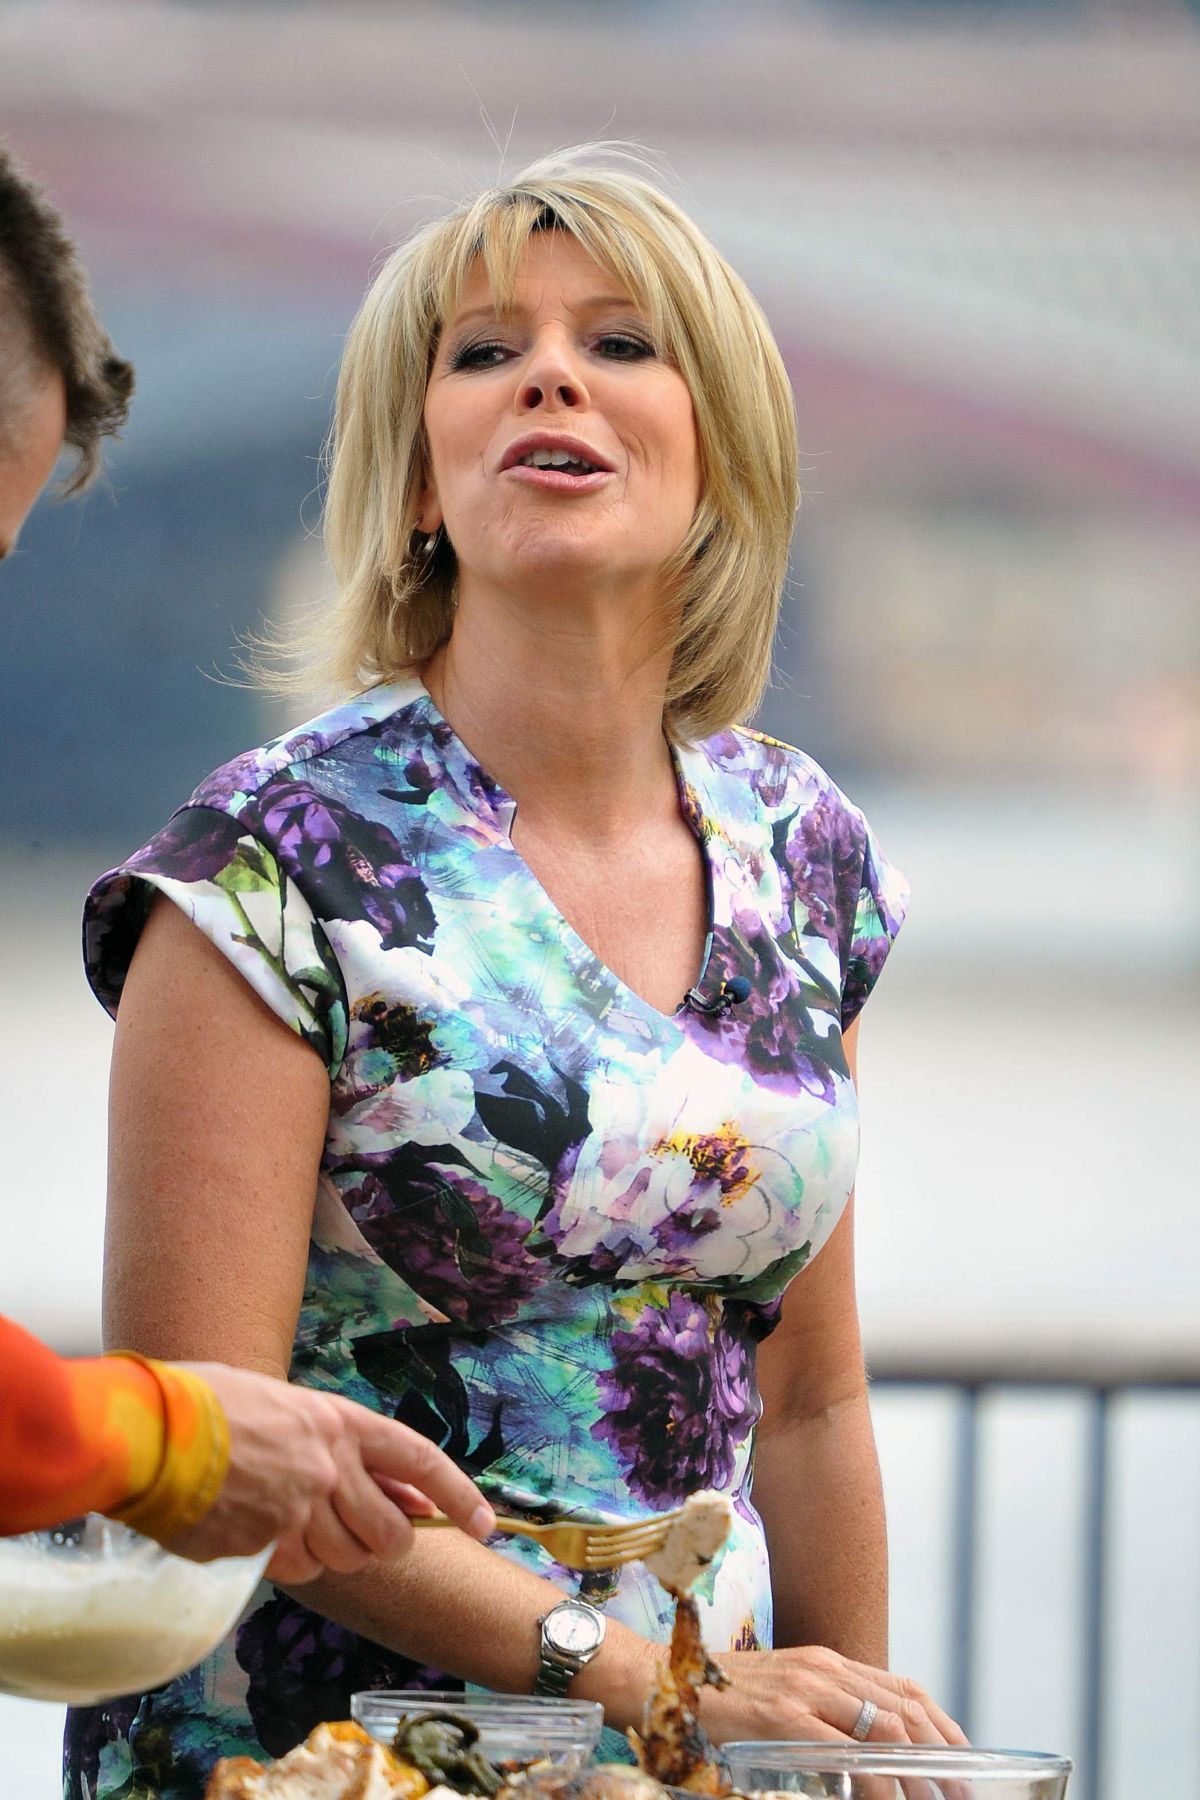 RUTH LANGSFORD on the Set f This Morning Show in London 07/21/2016